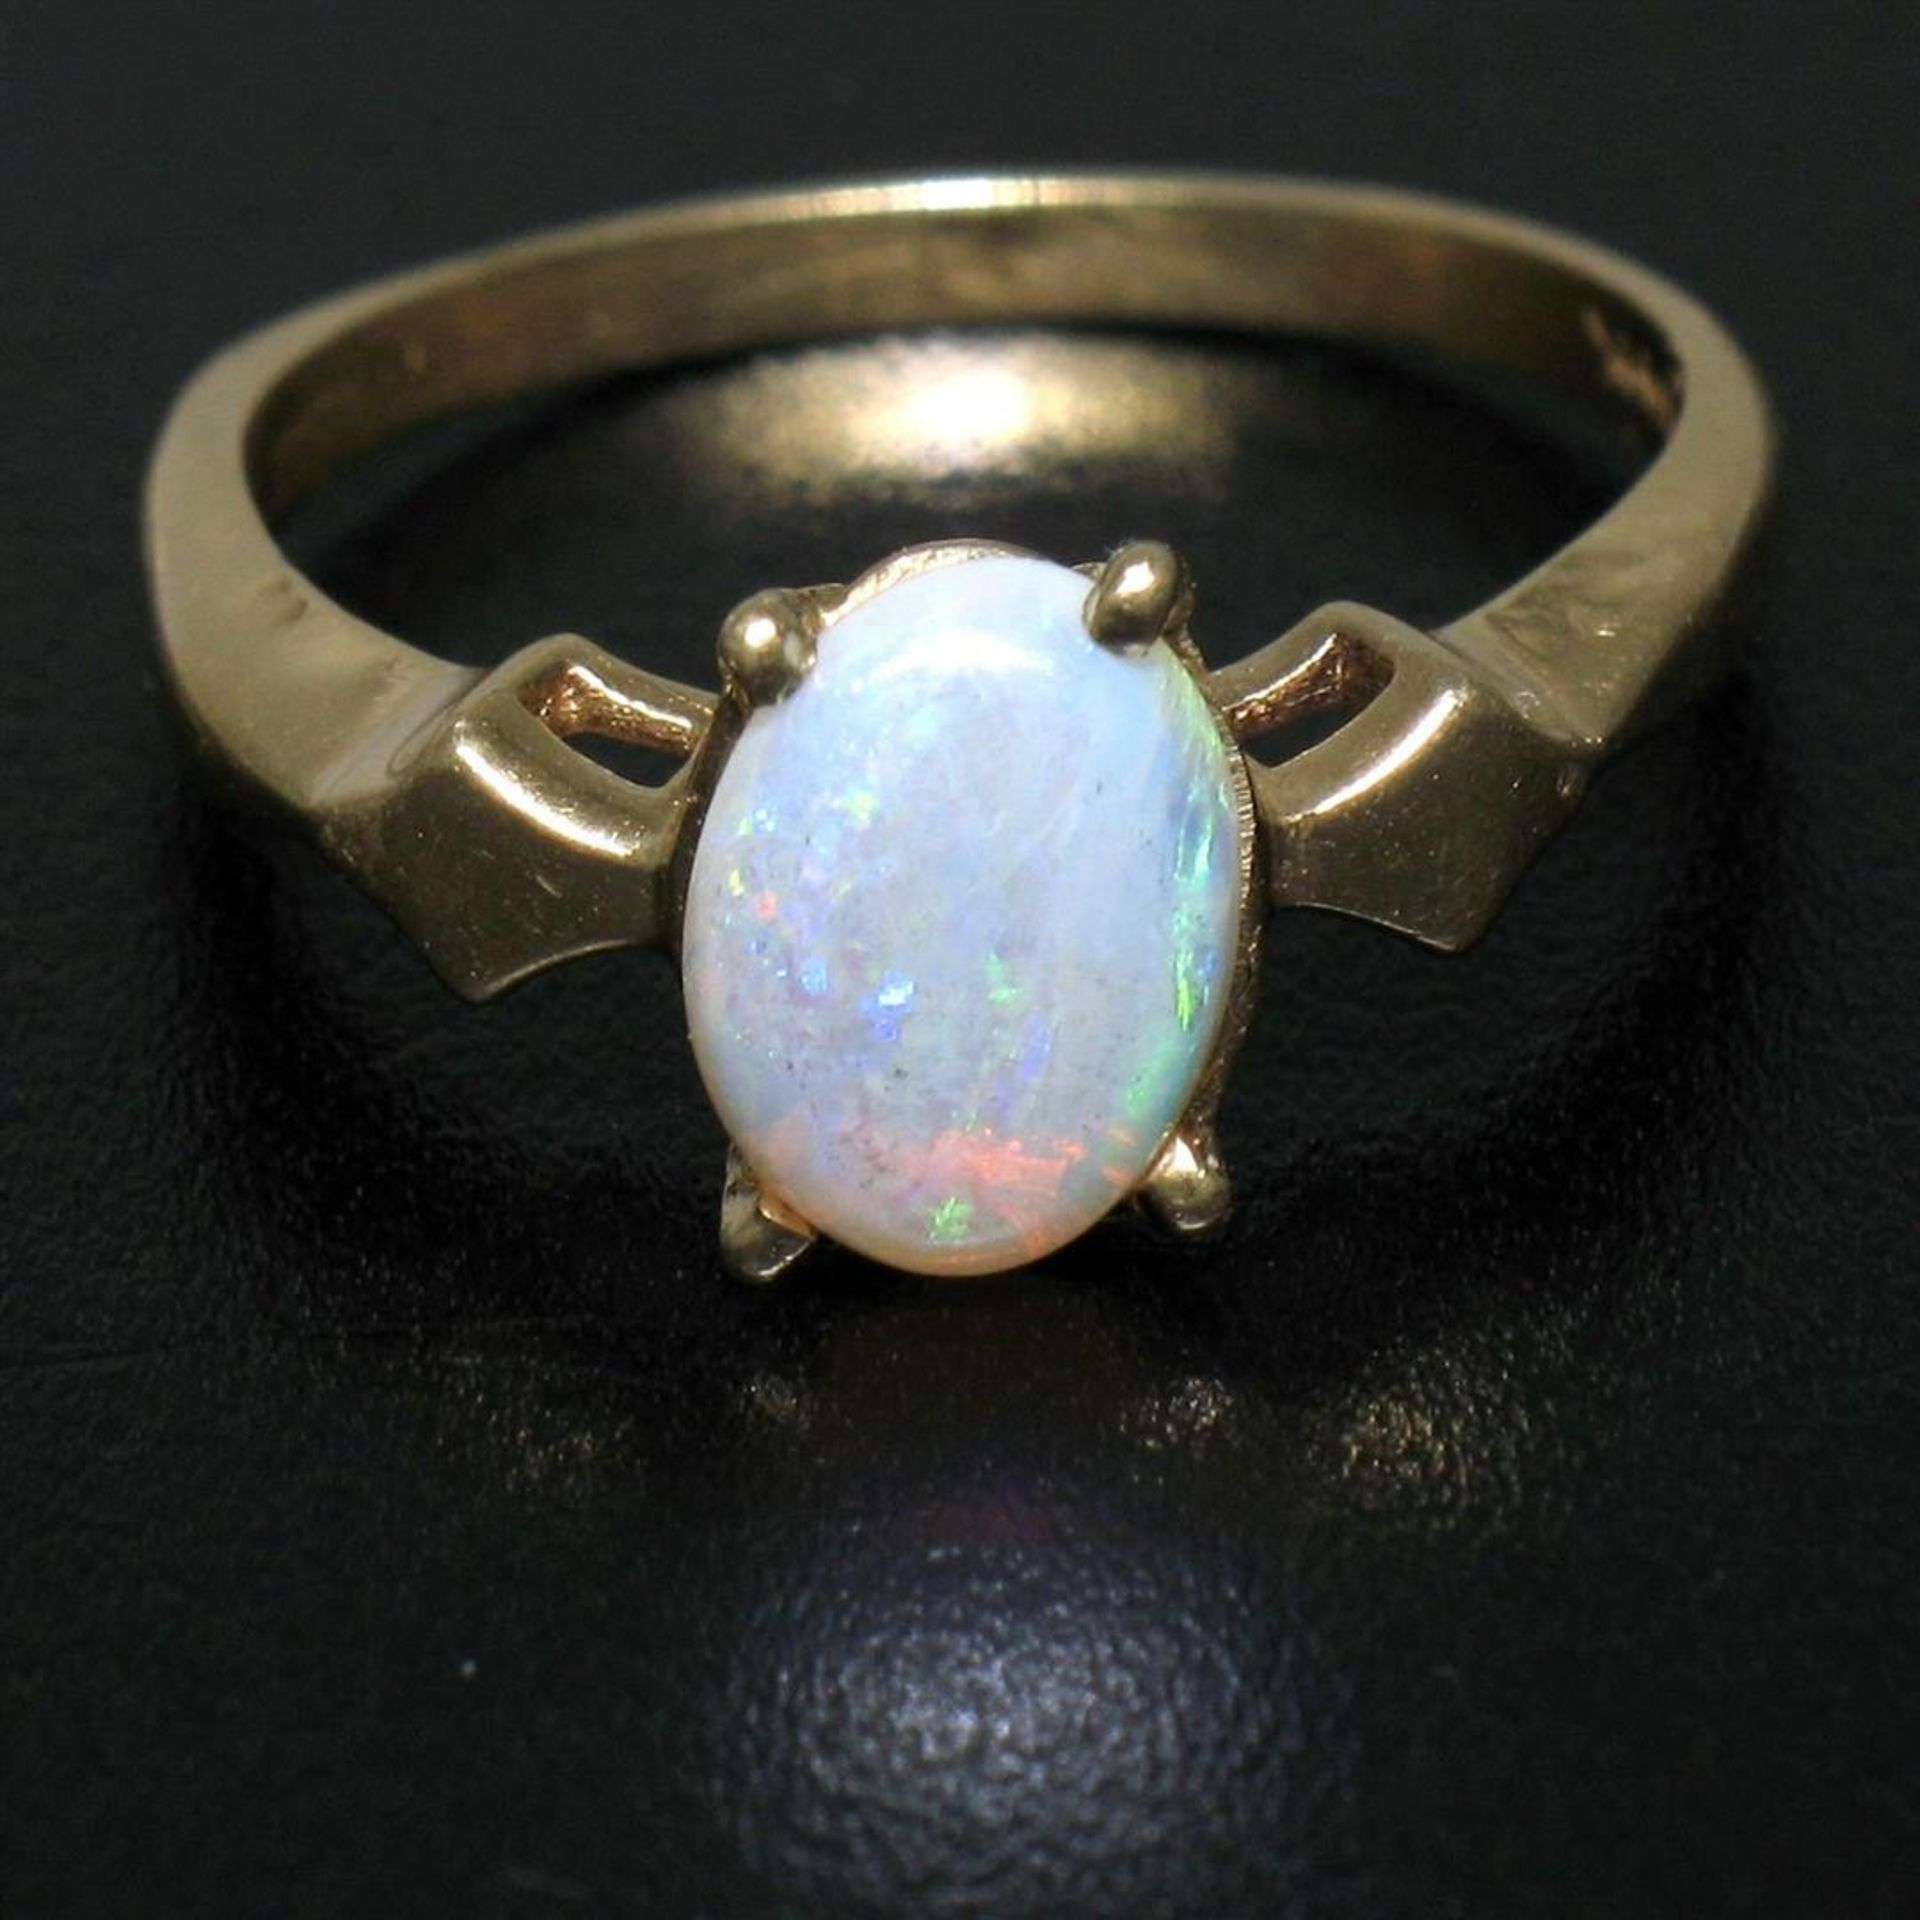 Vintage 14K Yellow Gold 0.65ct Petite Oval Cabochon Opal Solitaire Ring Size 6 - Image 7 of 9